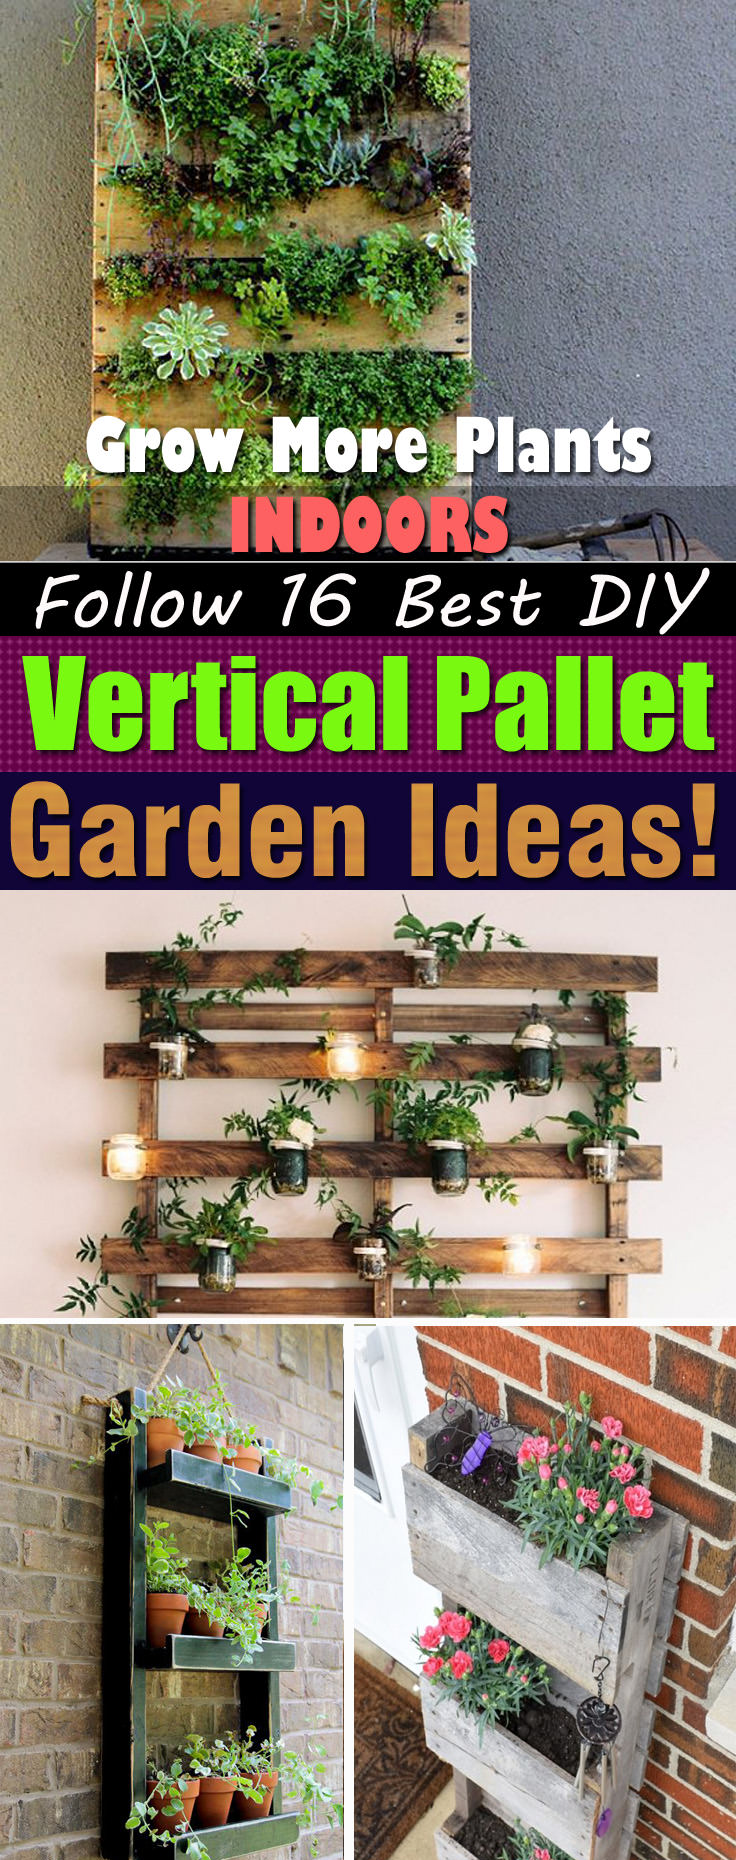 22 Amazing Vertical Garden Ideas For Your Small Yard: Grow More Plants Indoors, Follow 16 Best DIY Vertical